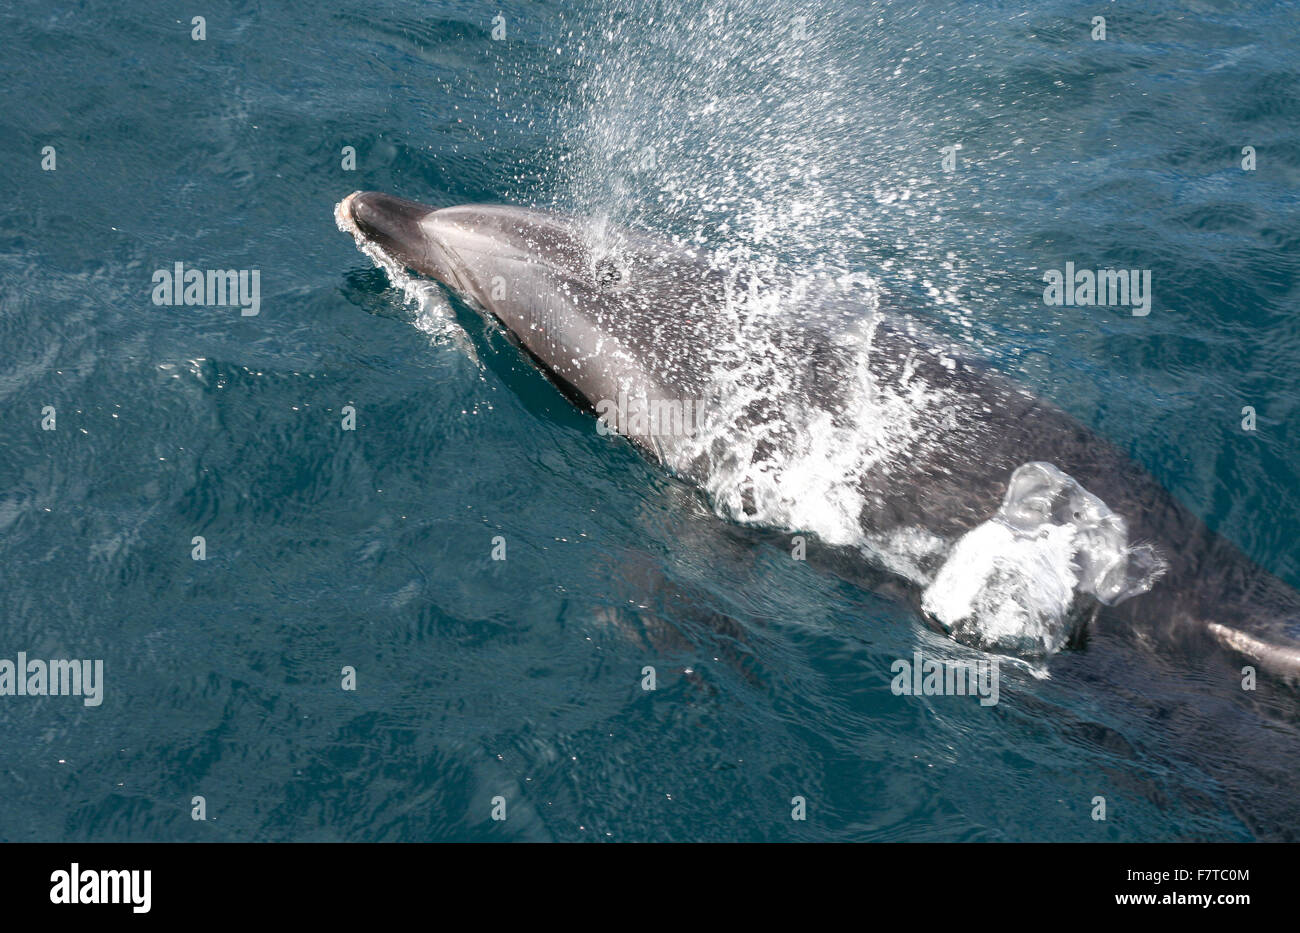 Watching dolphins from the boat by Strait of Gibraltar area, Tarifa, Spain - Stock Image